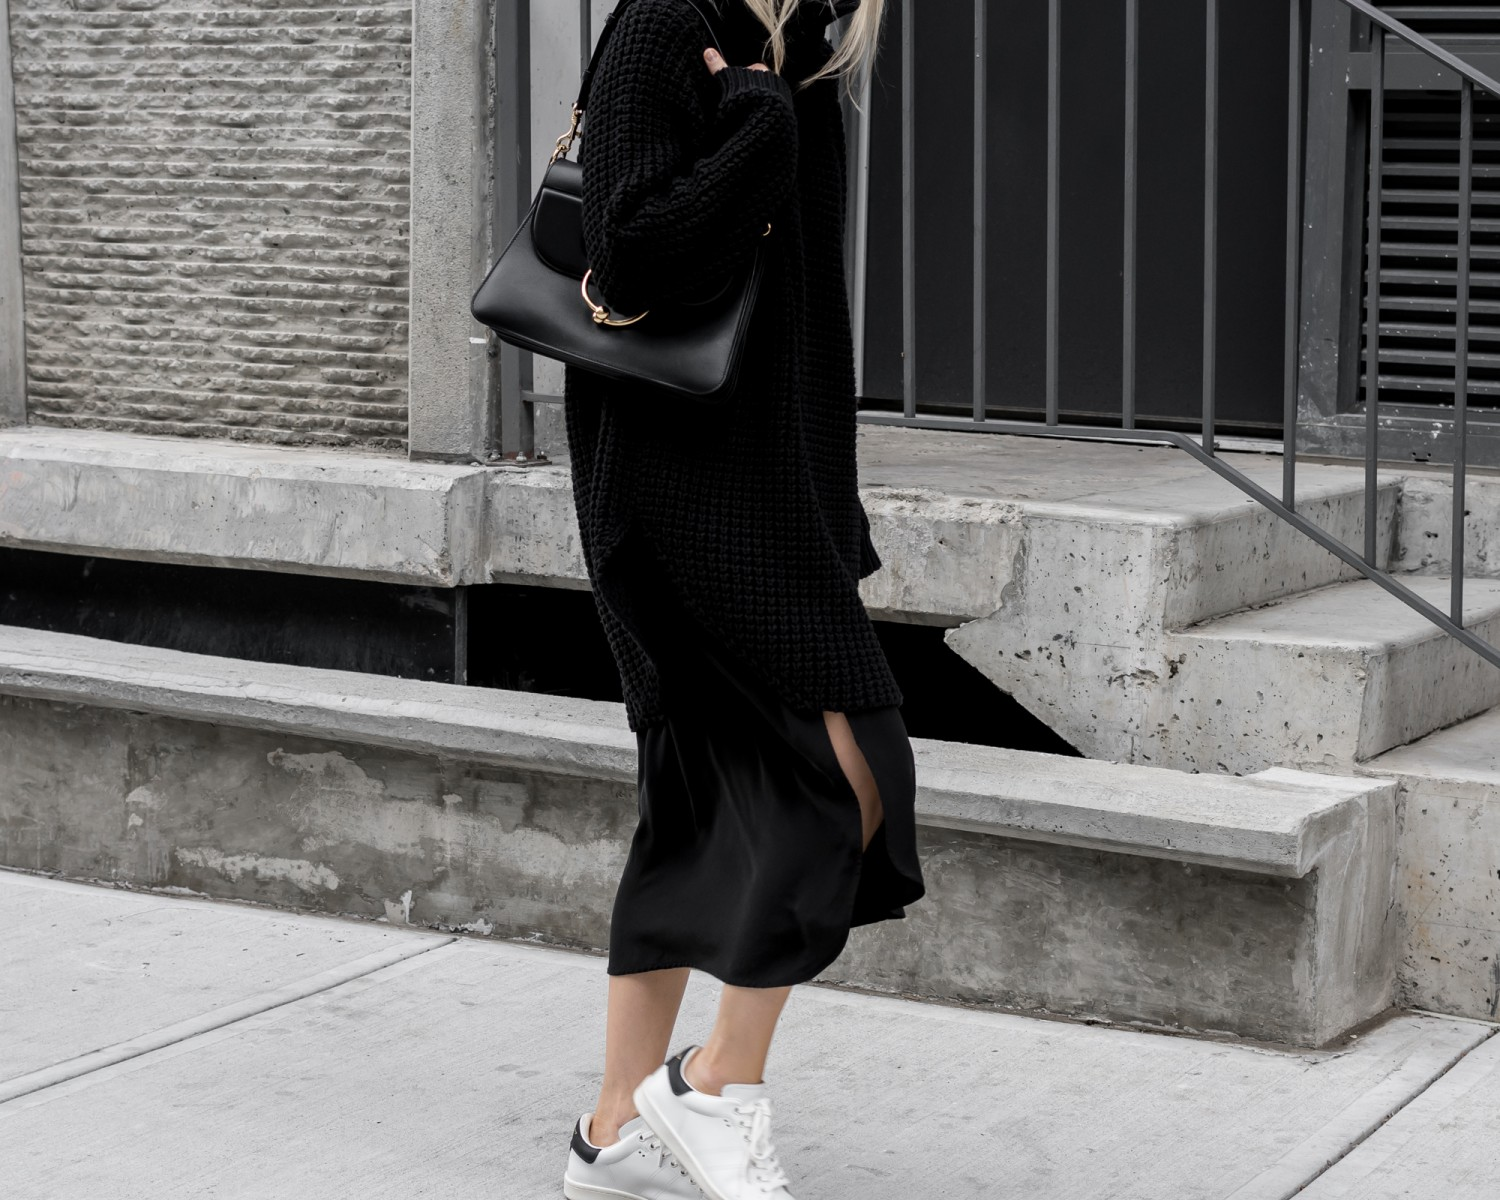 figtny.com | Slit Skirts + Sweaters + Sneakers